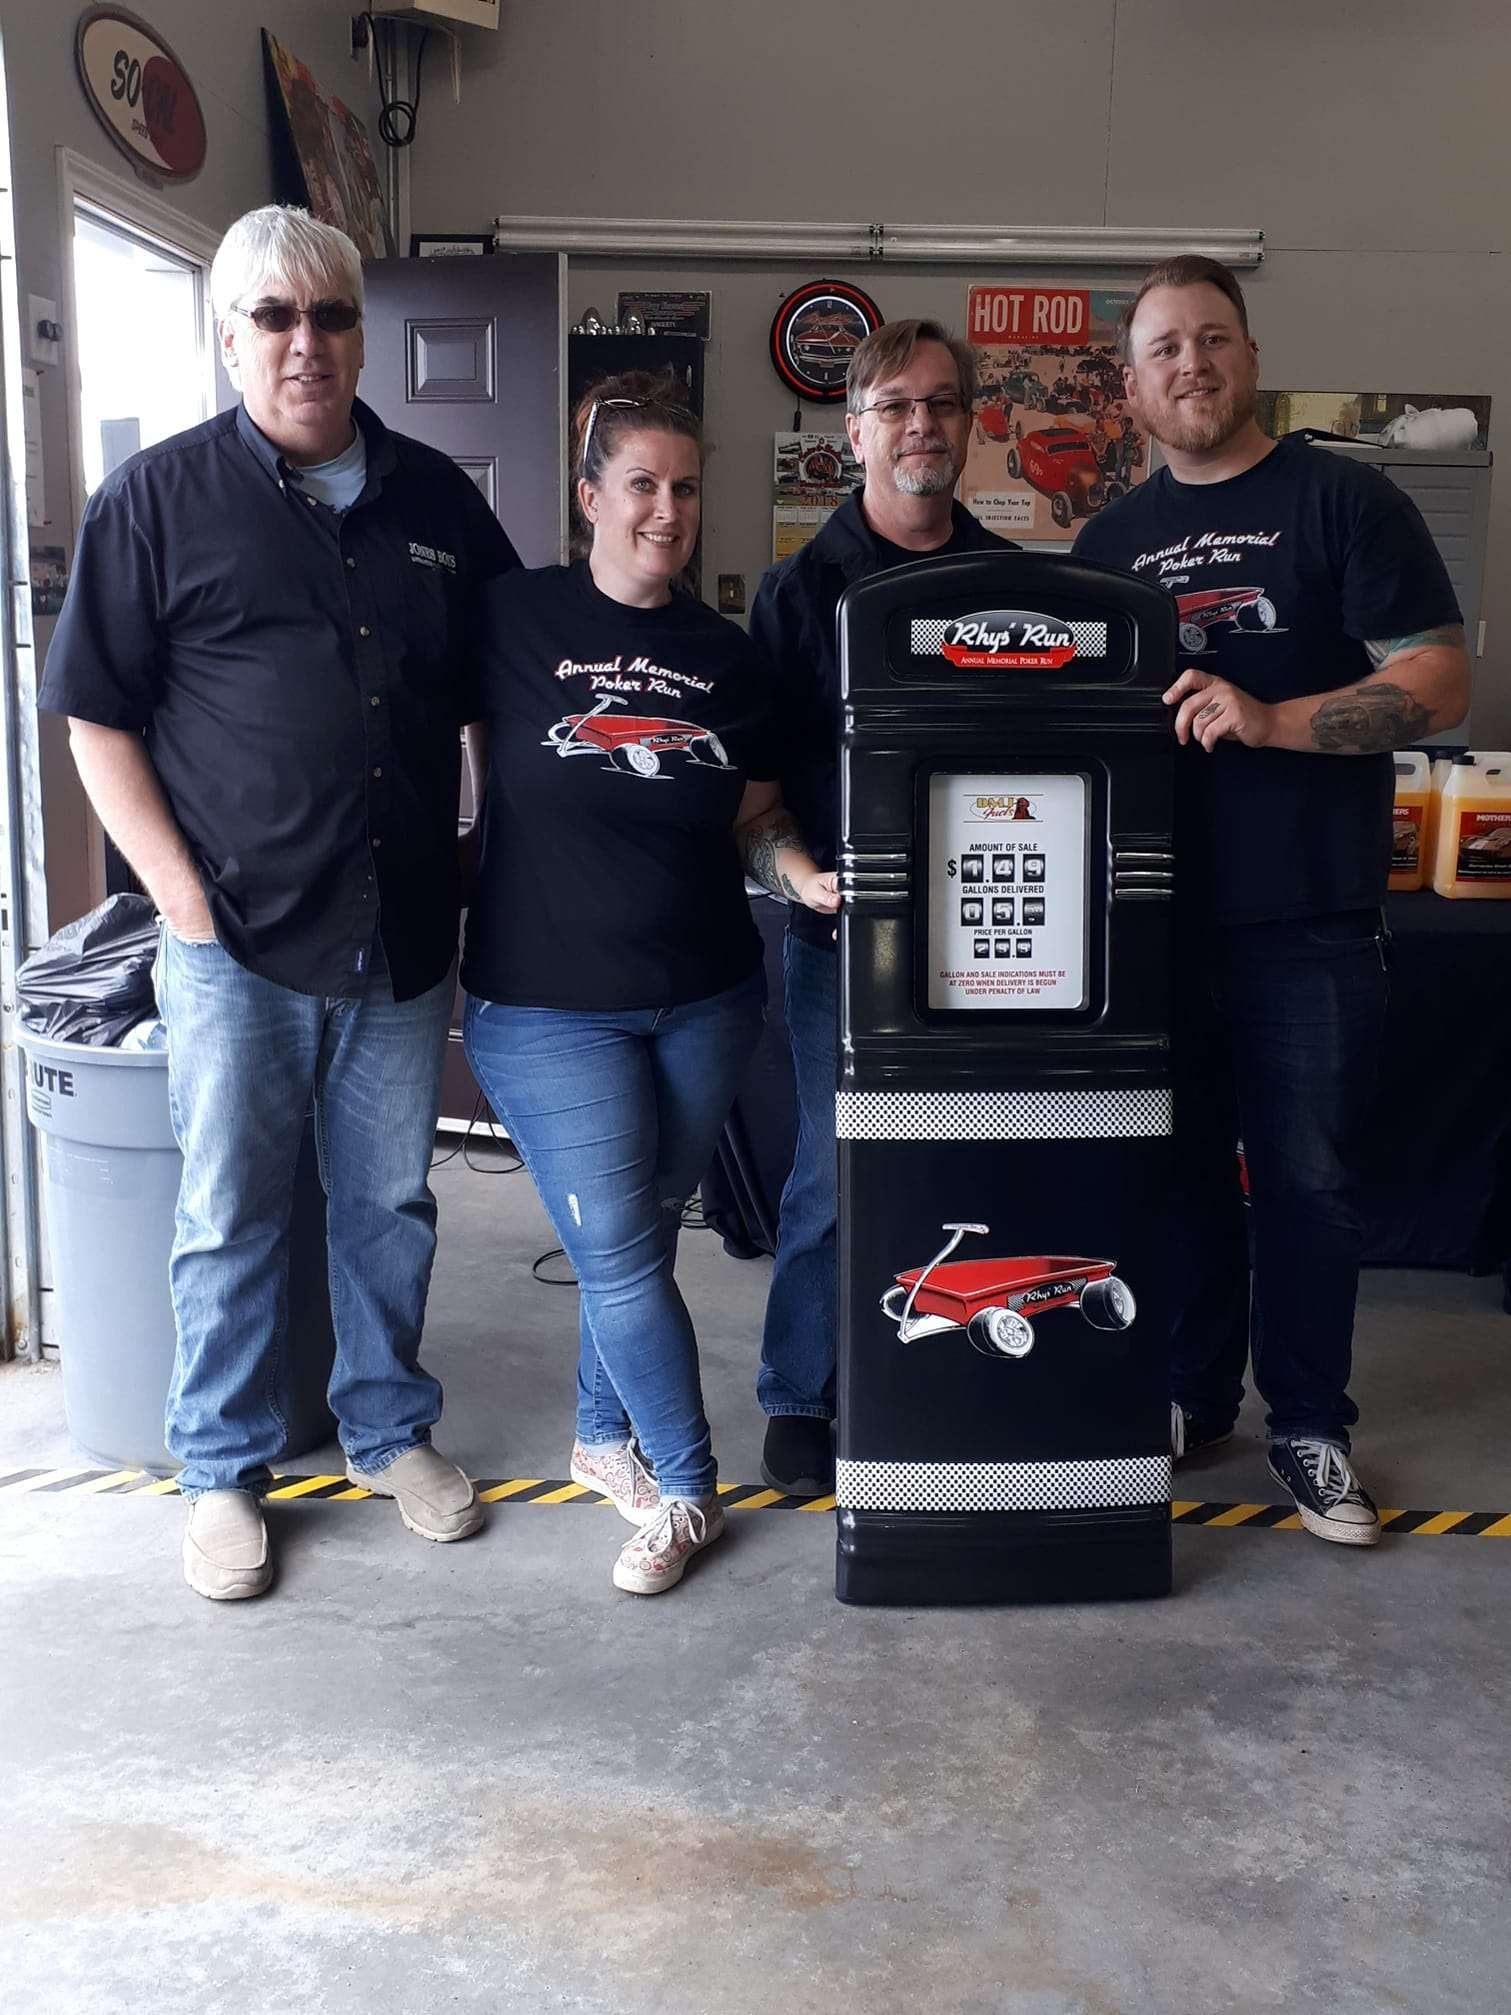 Rhys Run charity custom gas pump